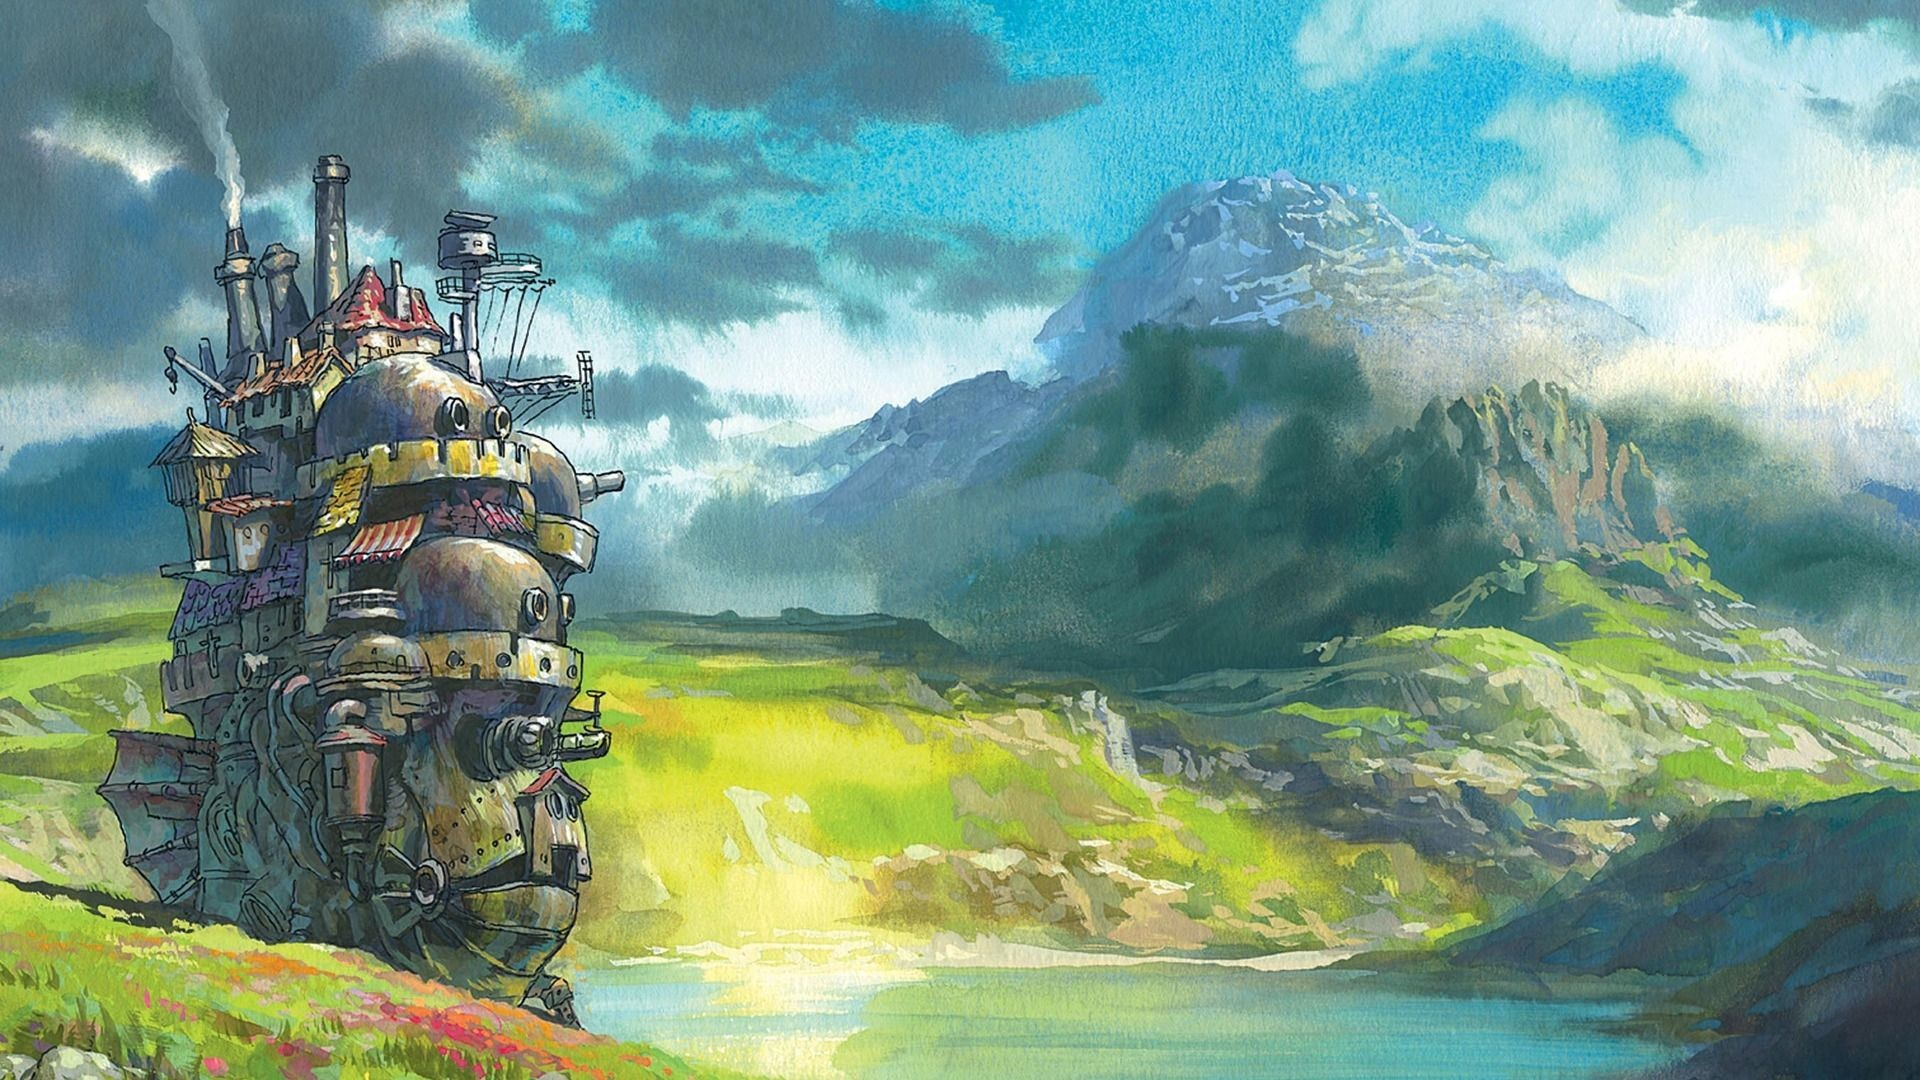 1920x1080 Studio Ghibli HD Wallpaper |  | ID:46392